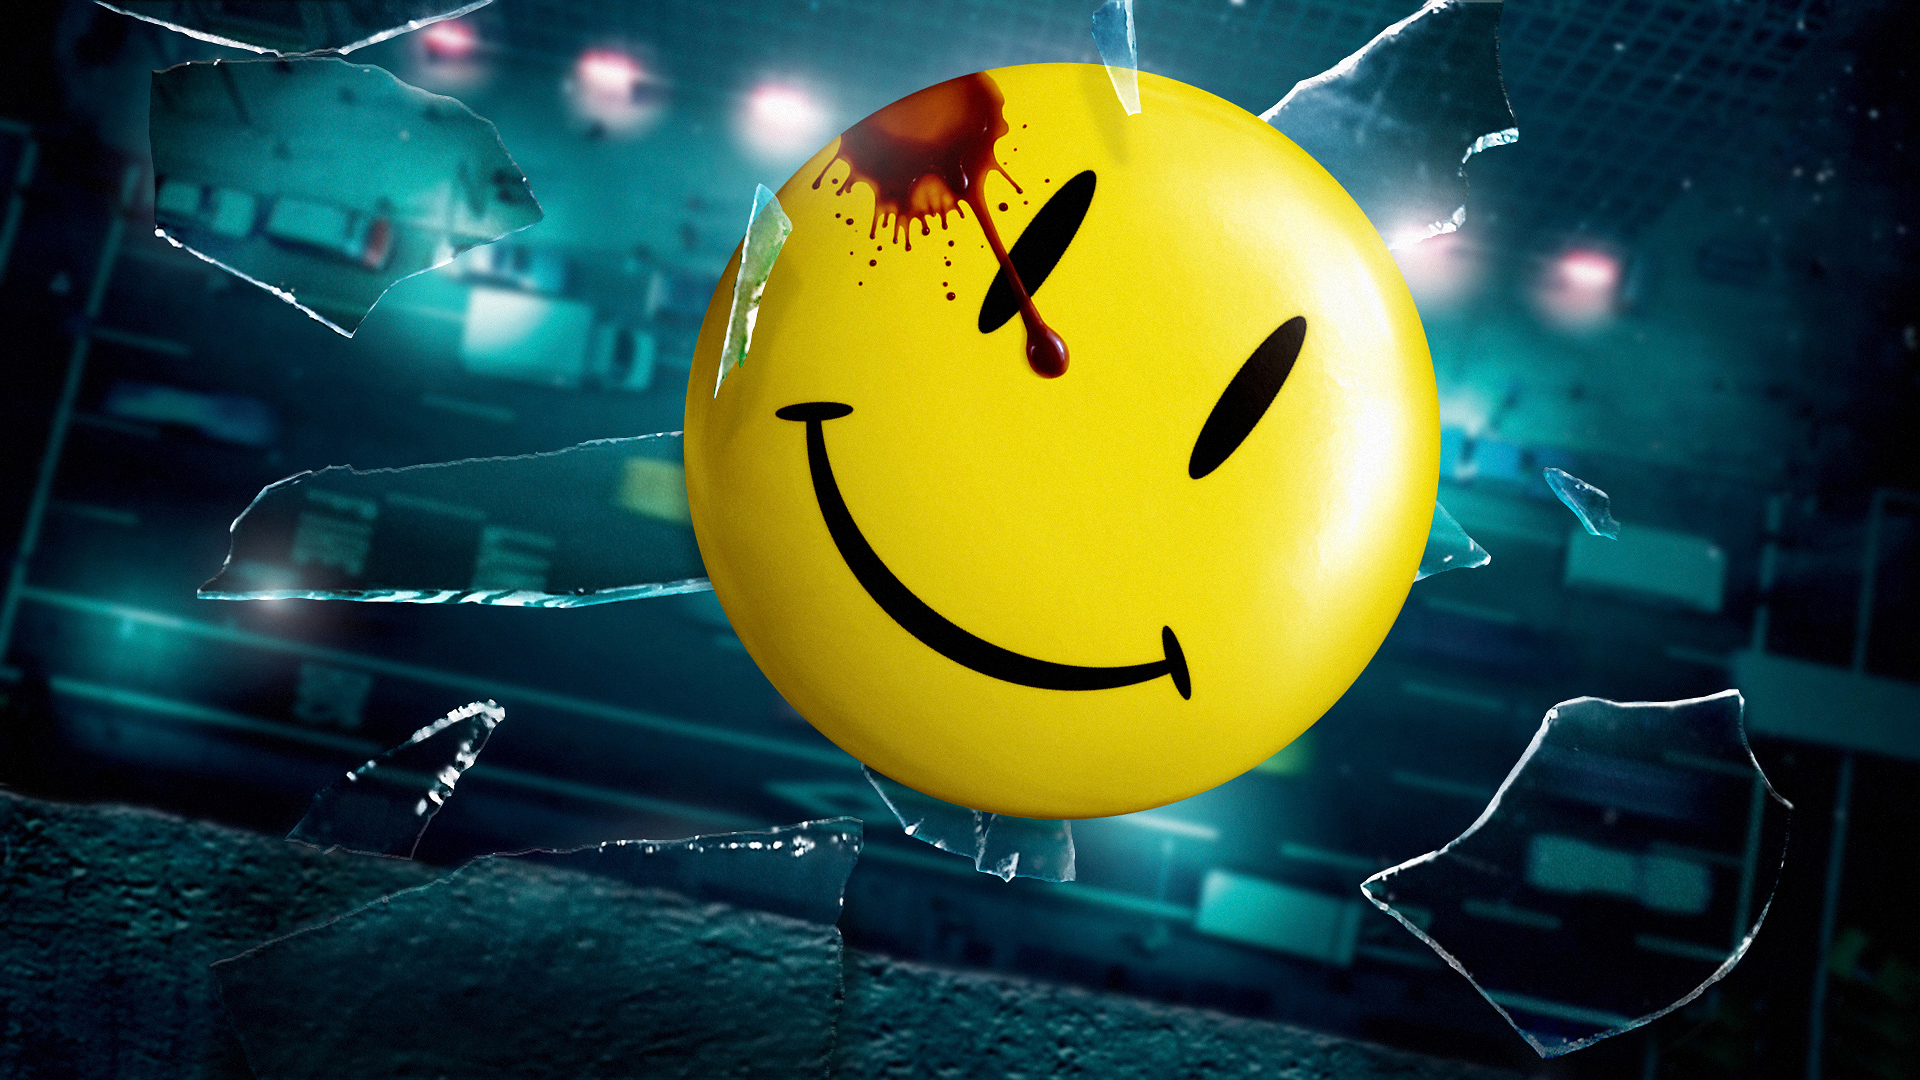 https://cinemaplanet.pt/wp-content/uploads/2018/08/watchmen-wallpapers-30185-1587103.jpg